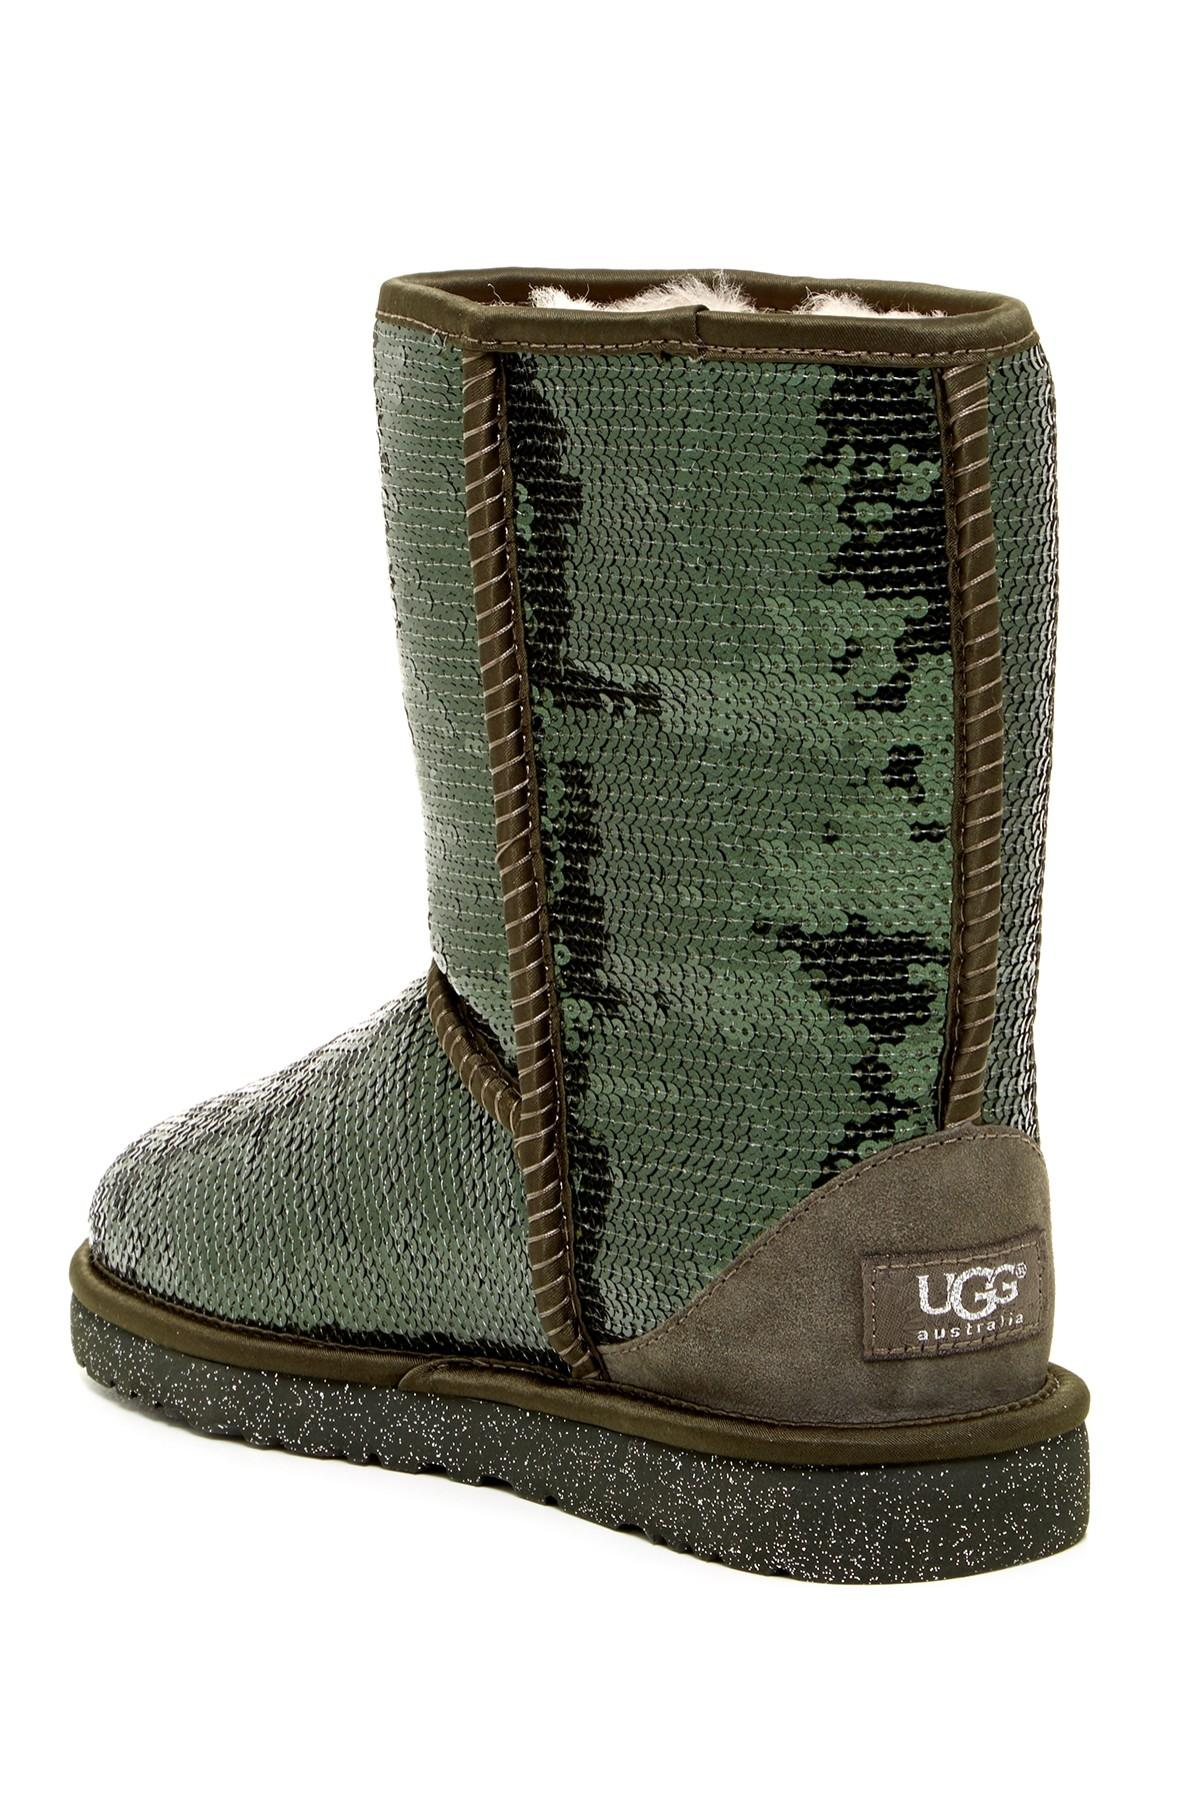 UGG Australia Forest Green Sequin Classic Short Sparkle Boots/Booties